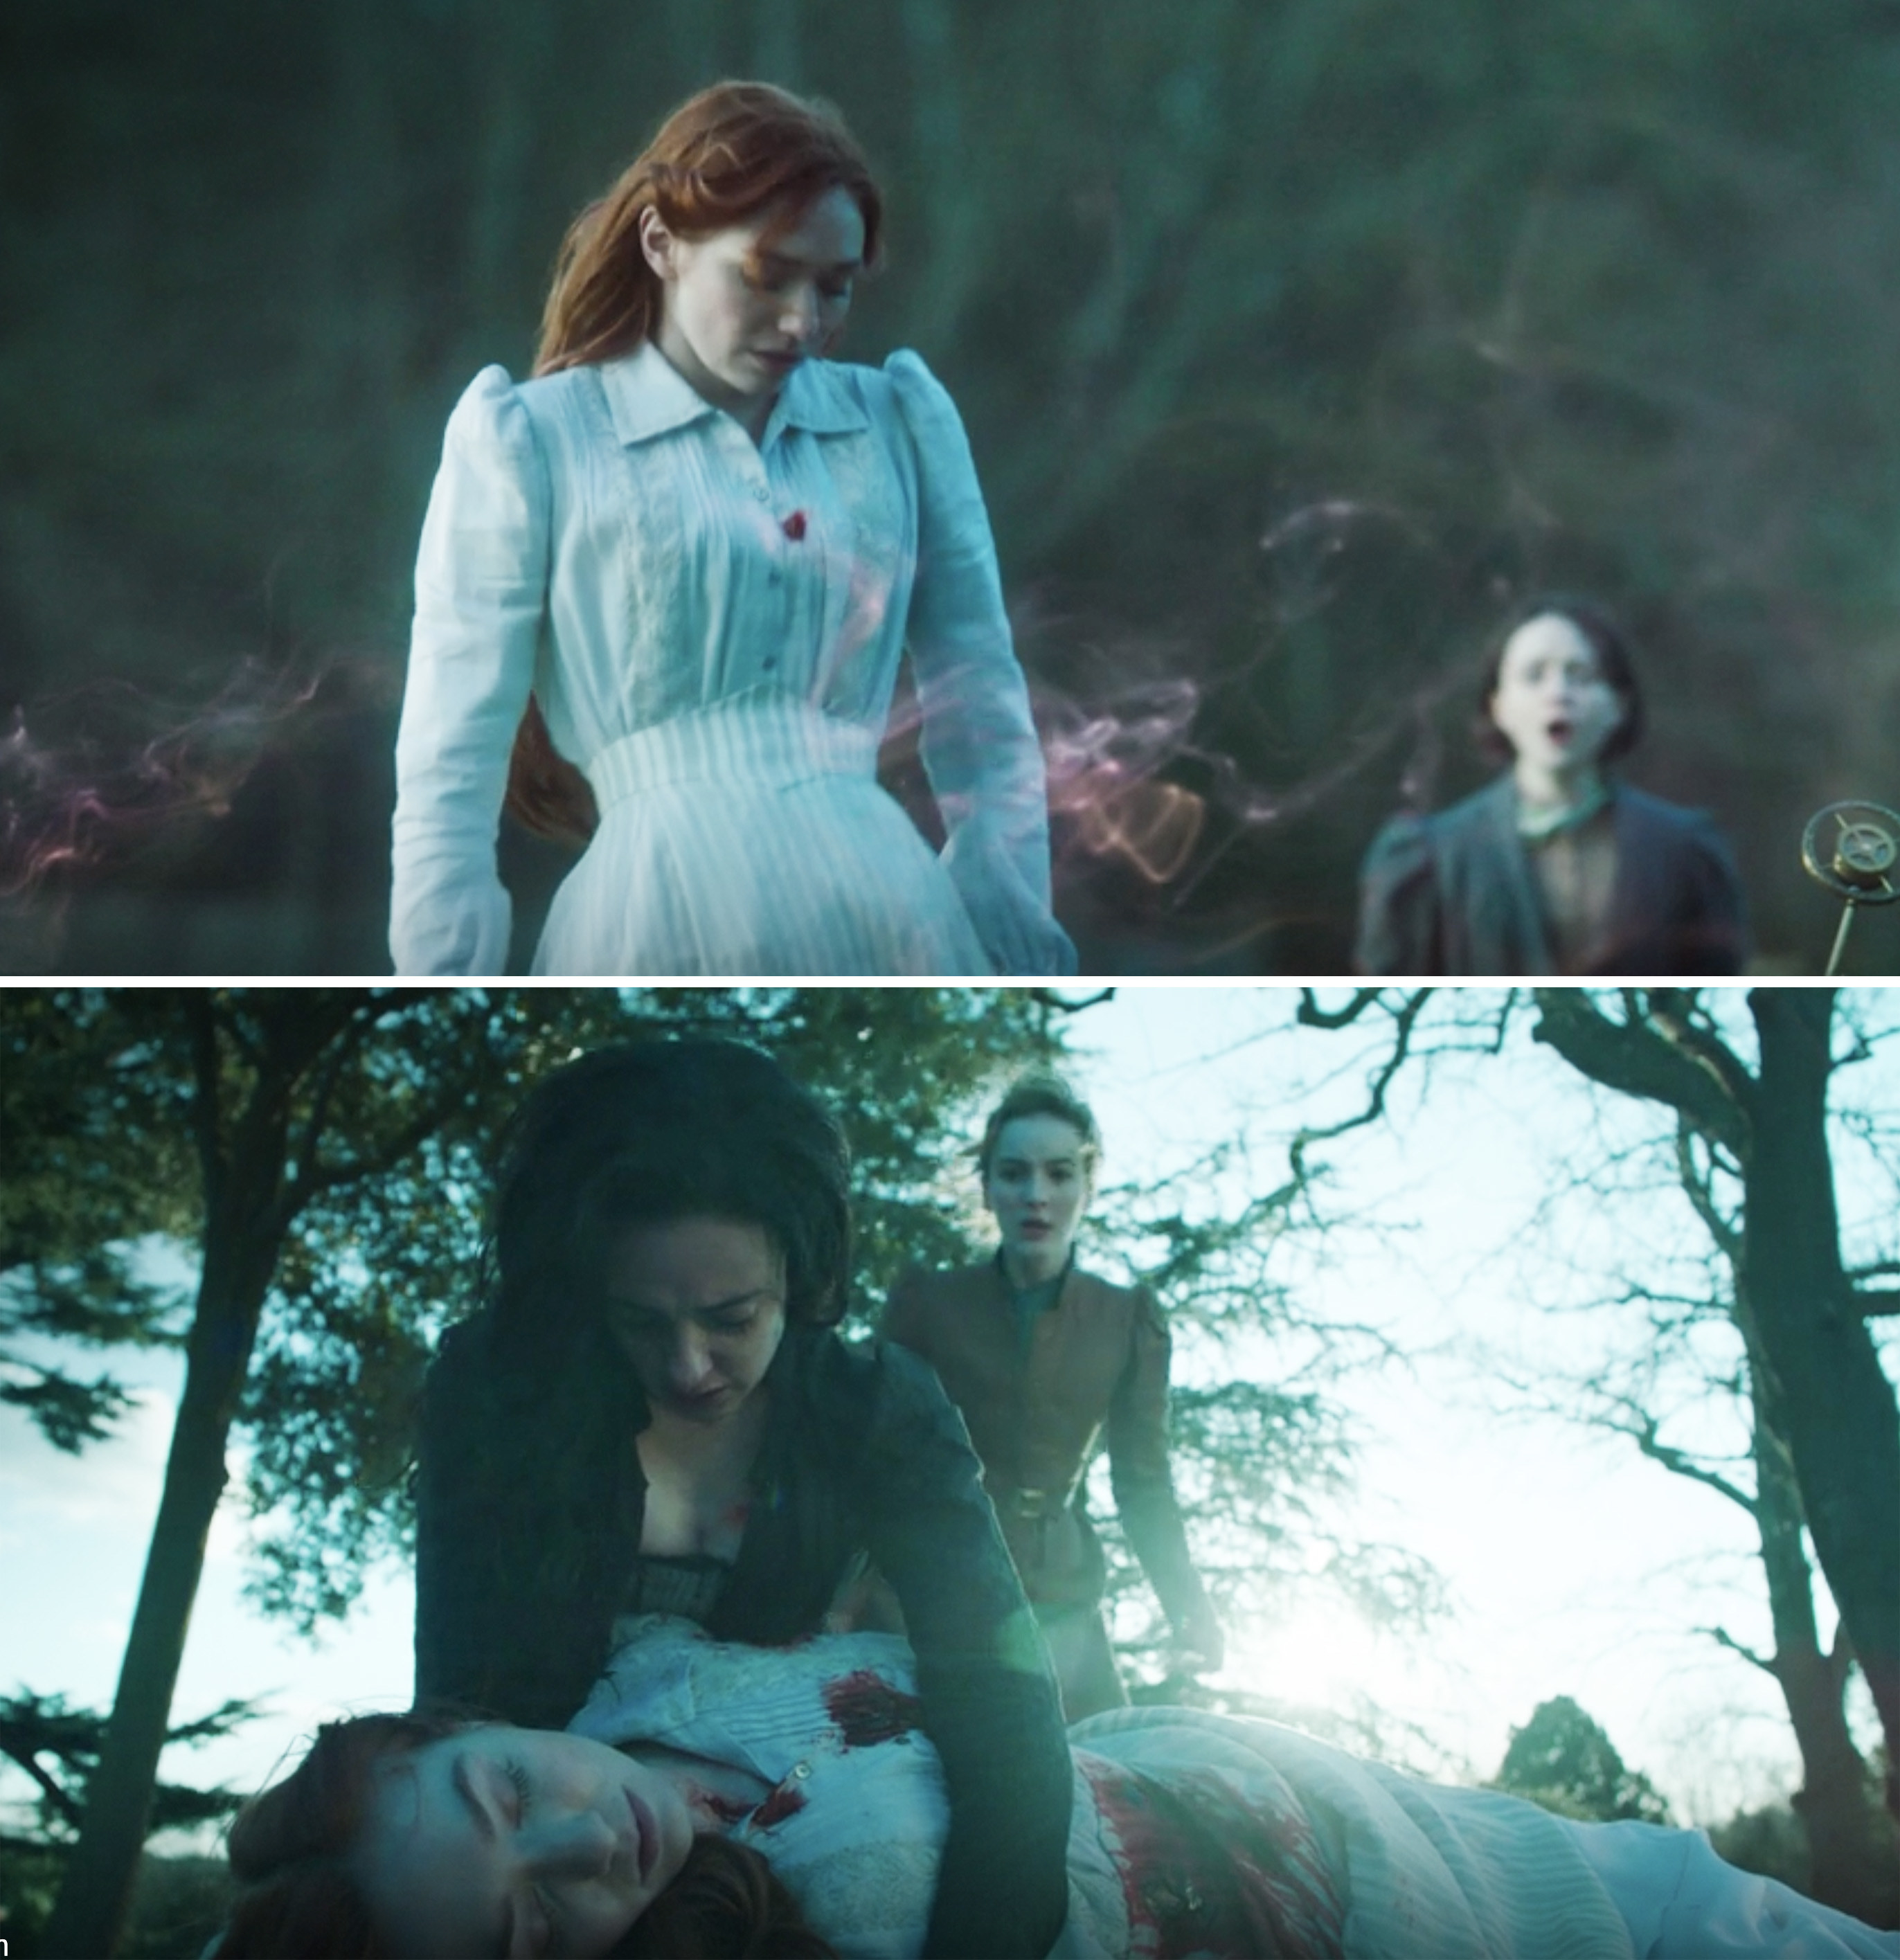 Amalia holding Mary's body after she's been shot